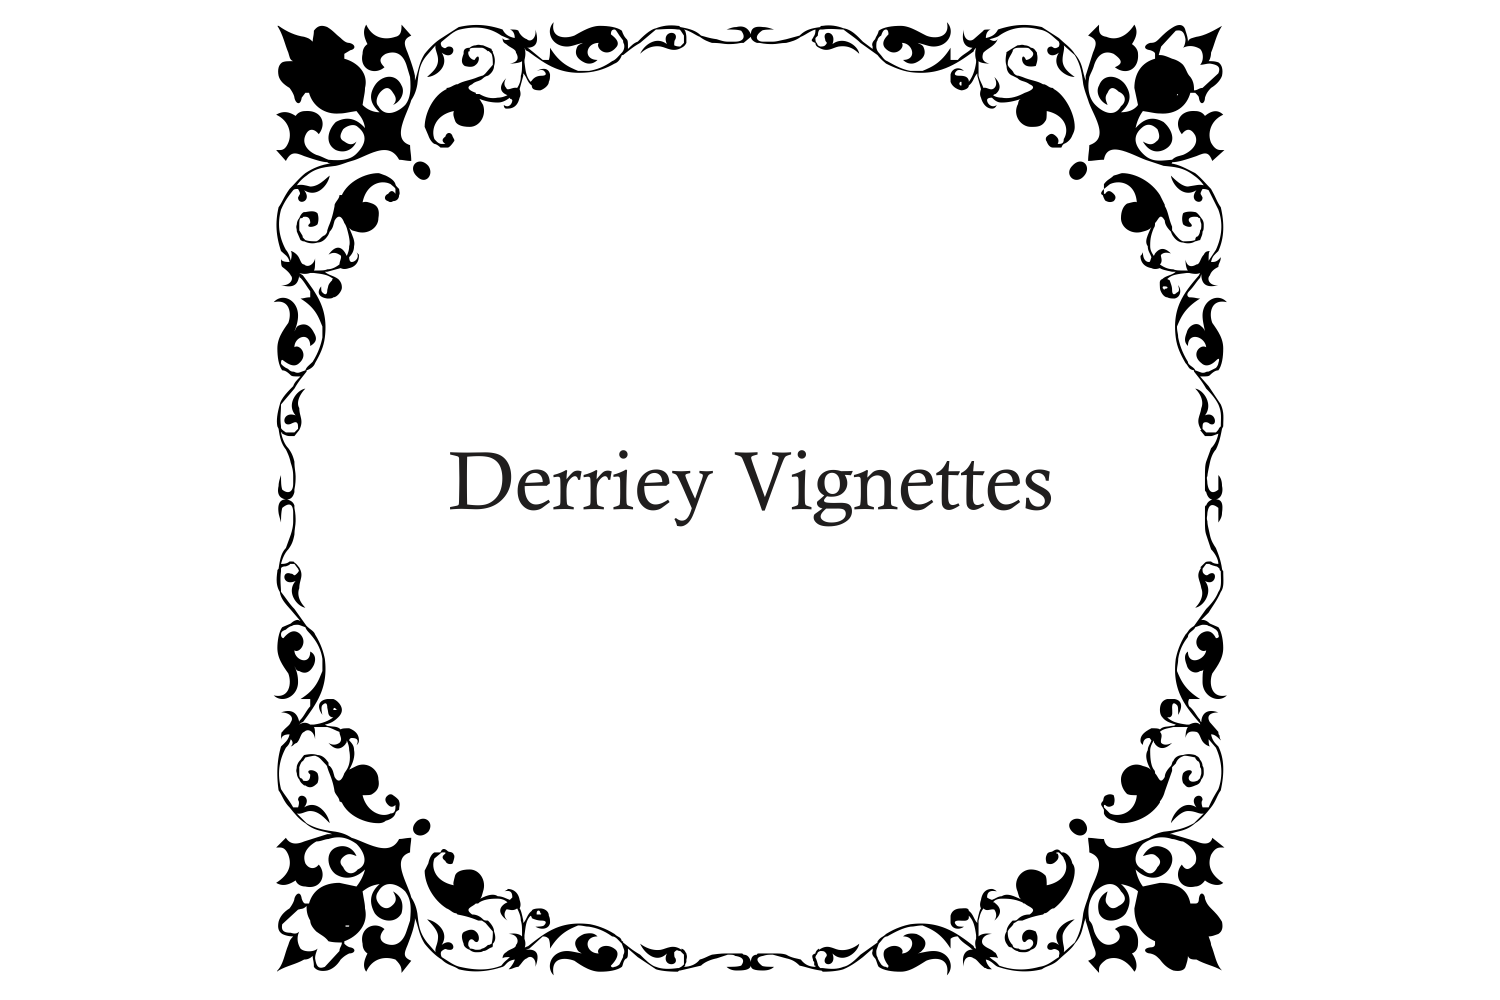 Derriey Vignettes Family Pack (5 fonts) example image 9